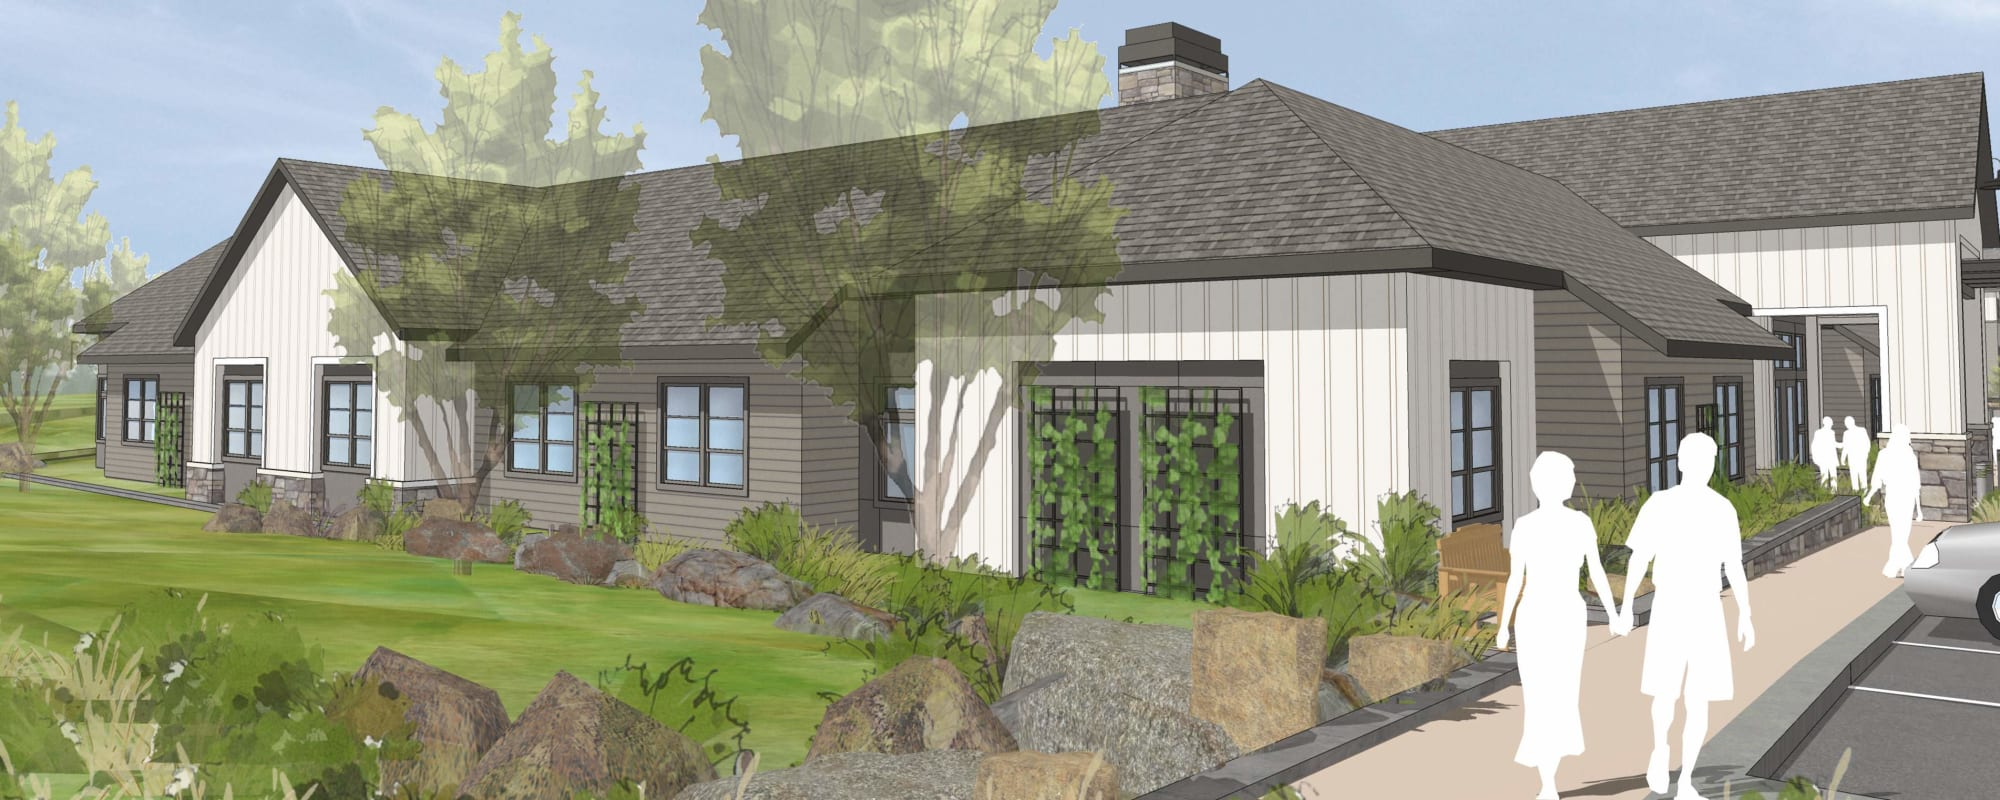 Rendering of The Springs at Happy Valley facility at Happy Valley, Oregon